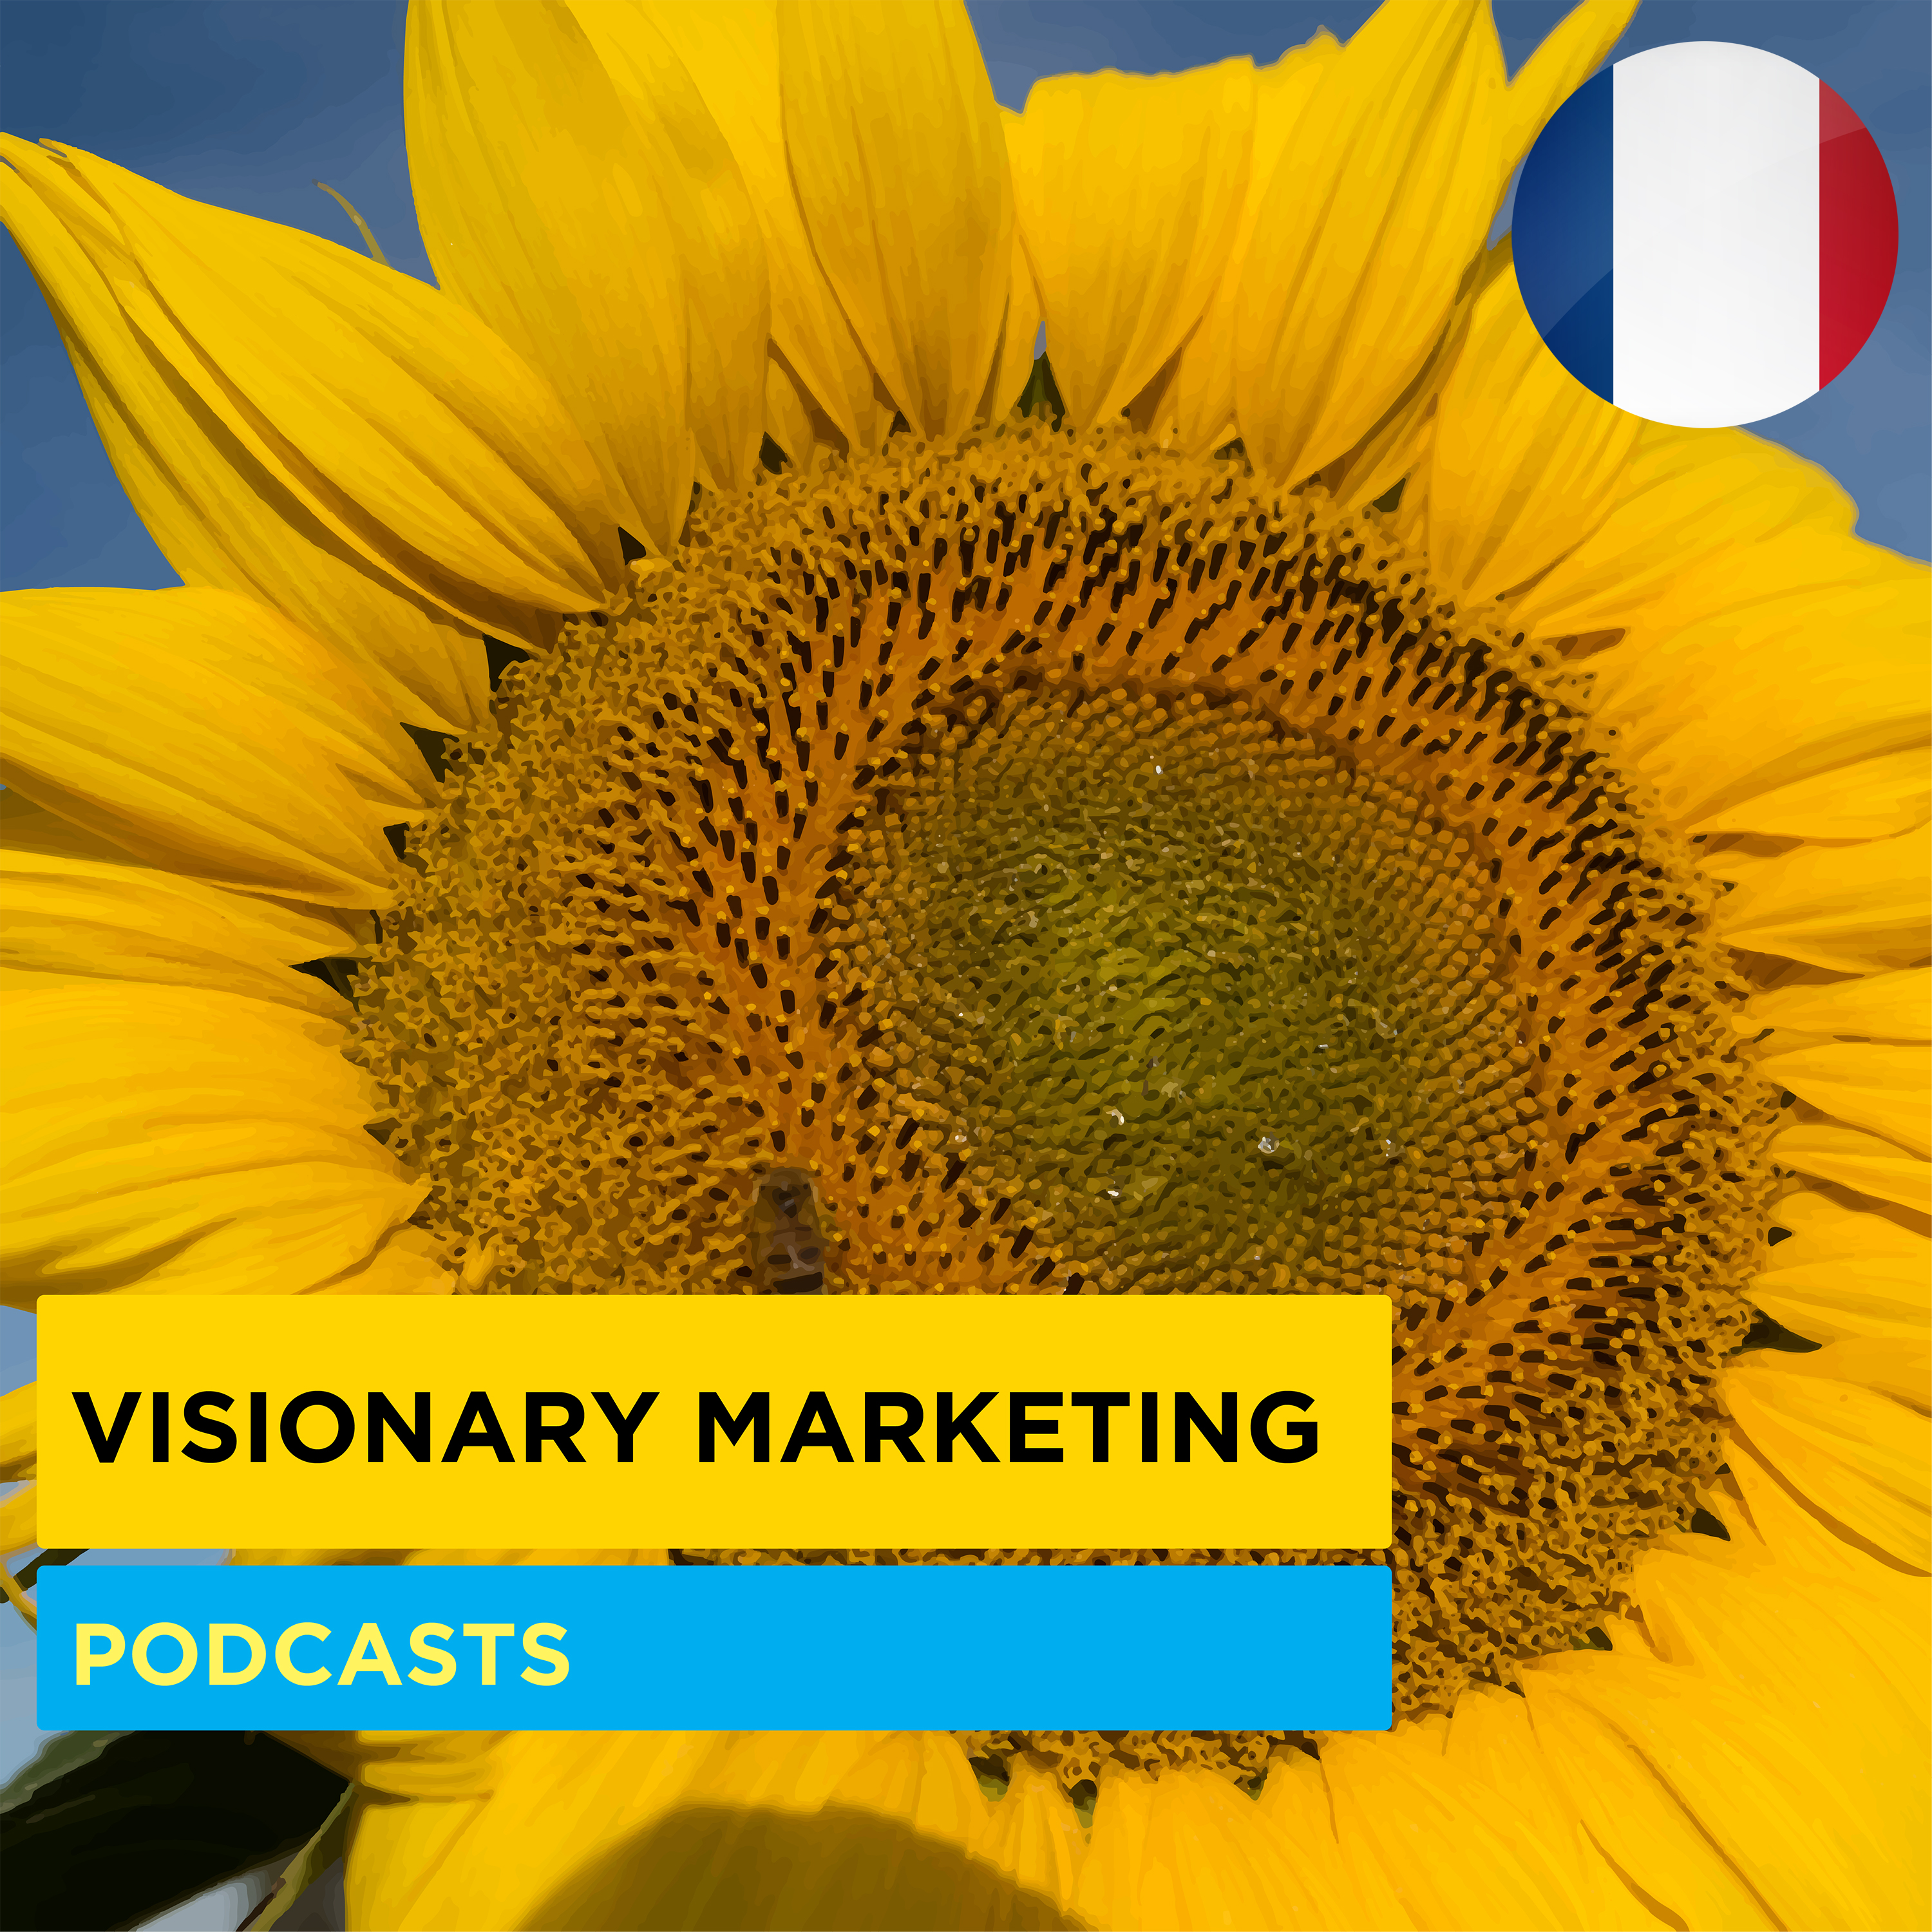 Les Podcasts de Visionary Marketing